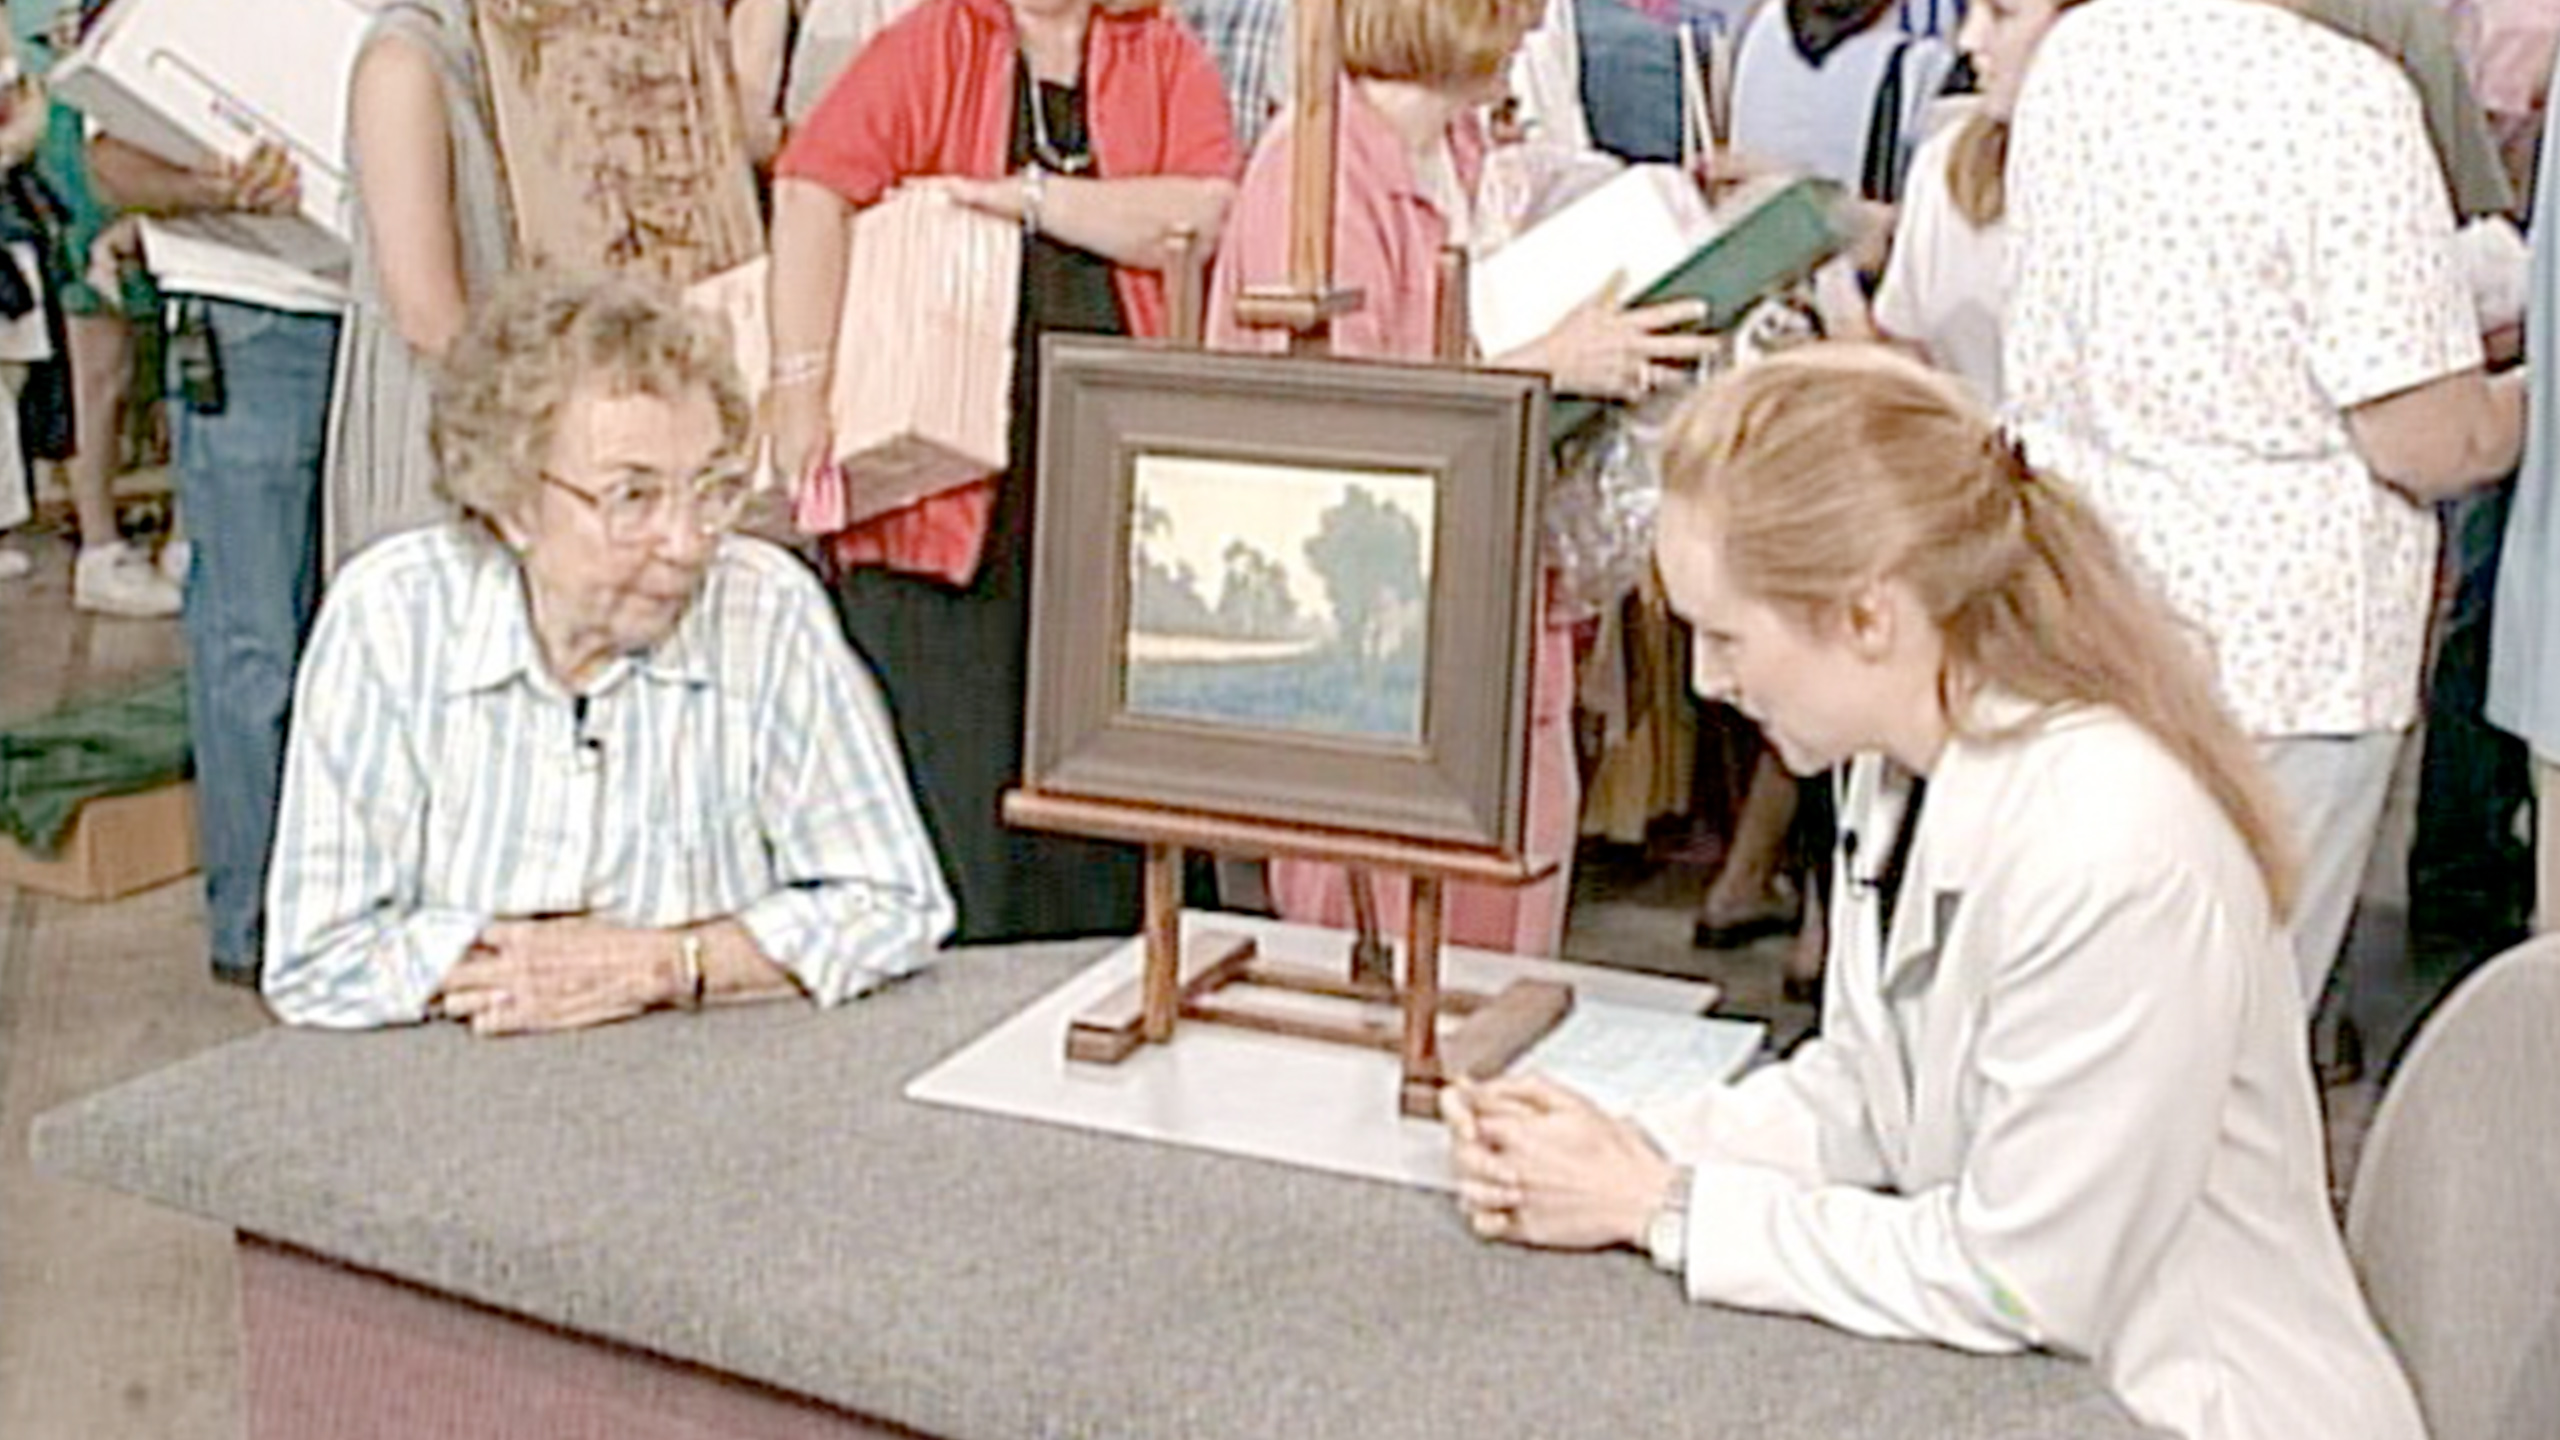 A client and an appraiser with a framed painting